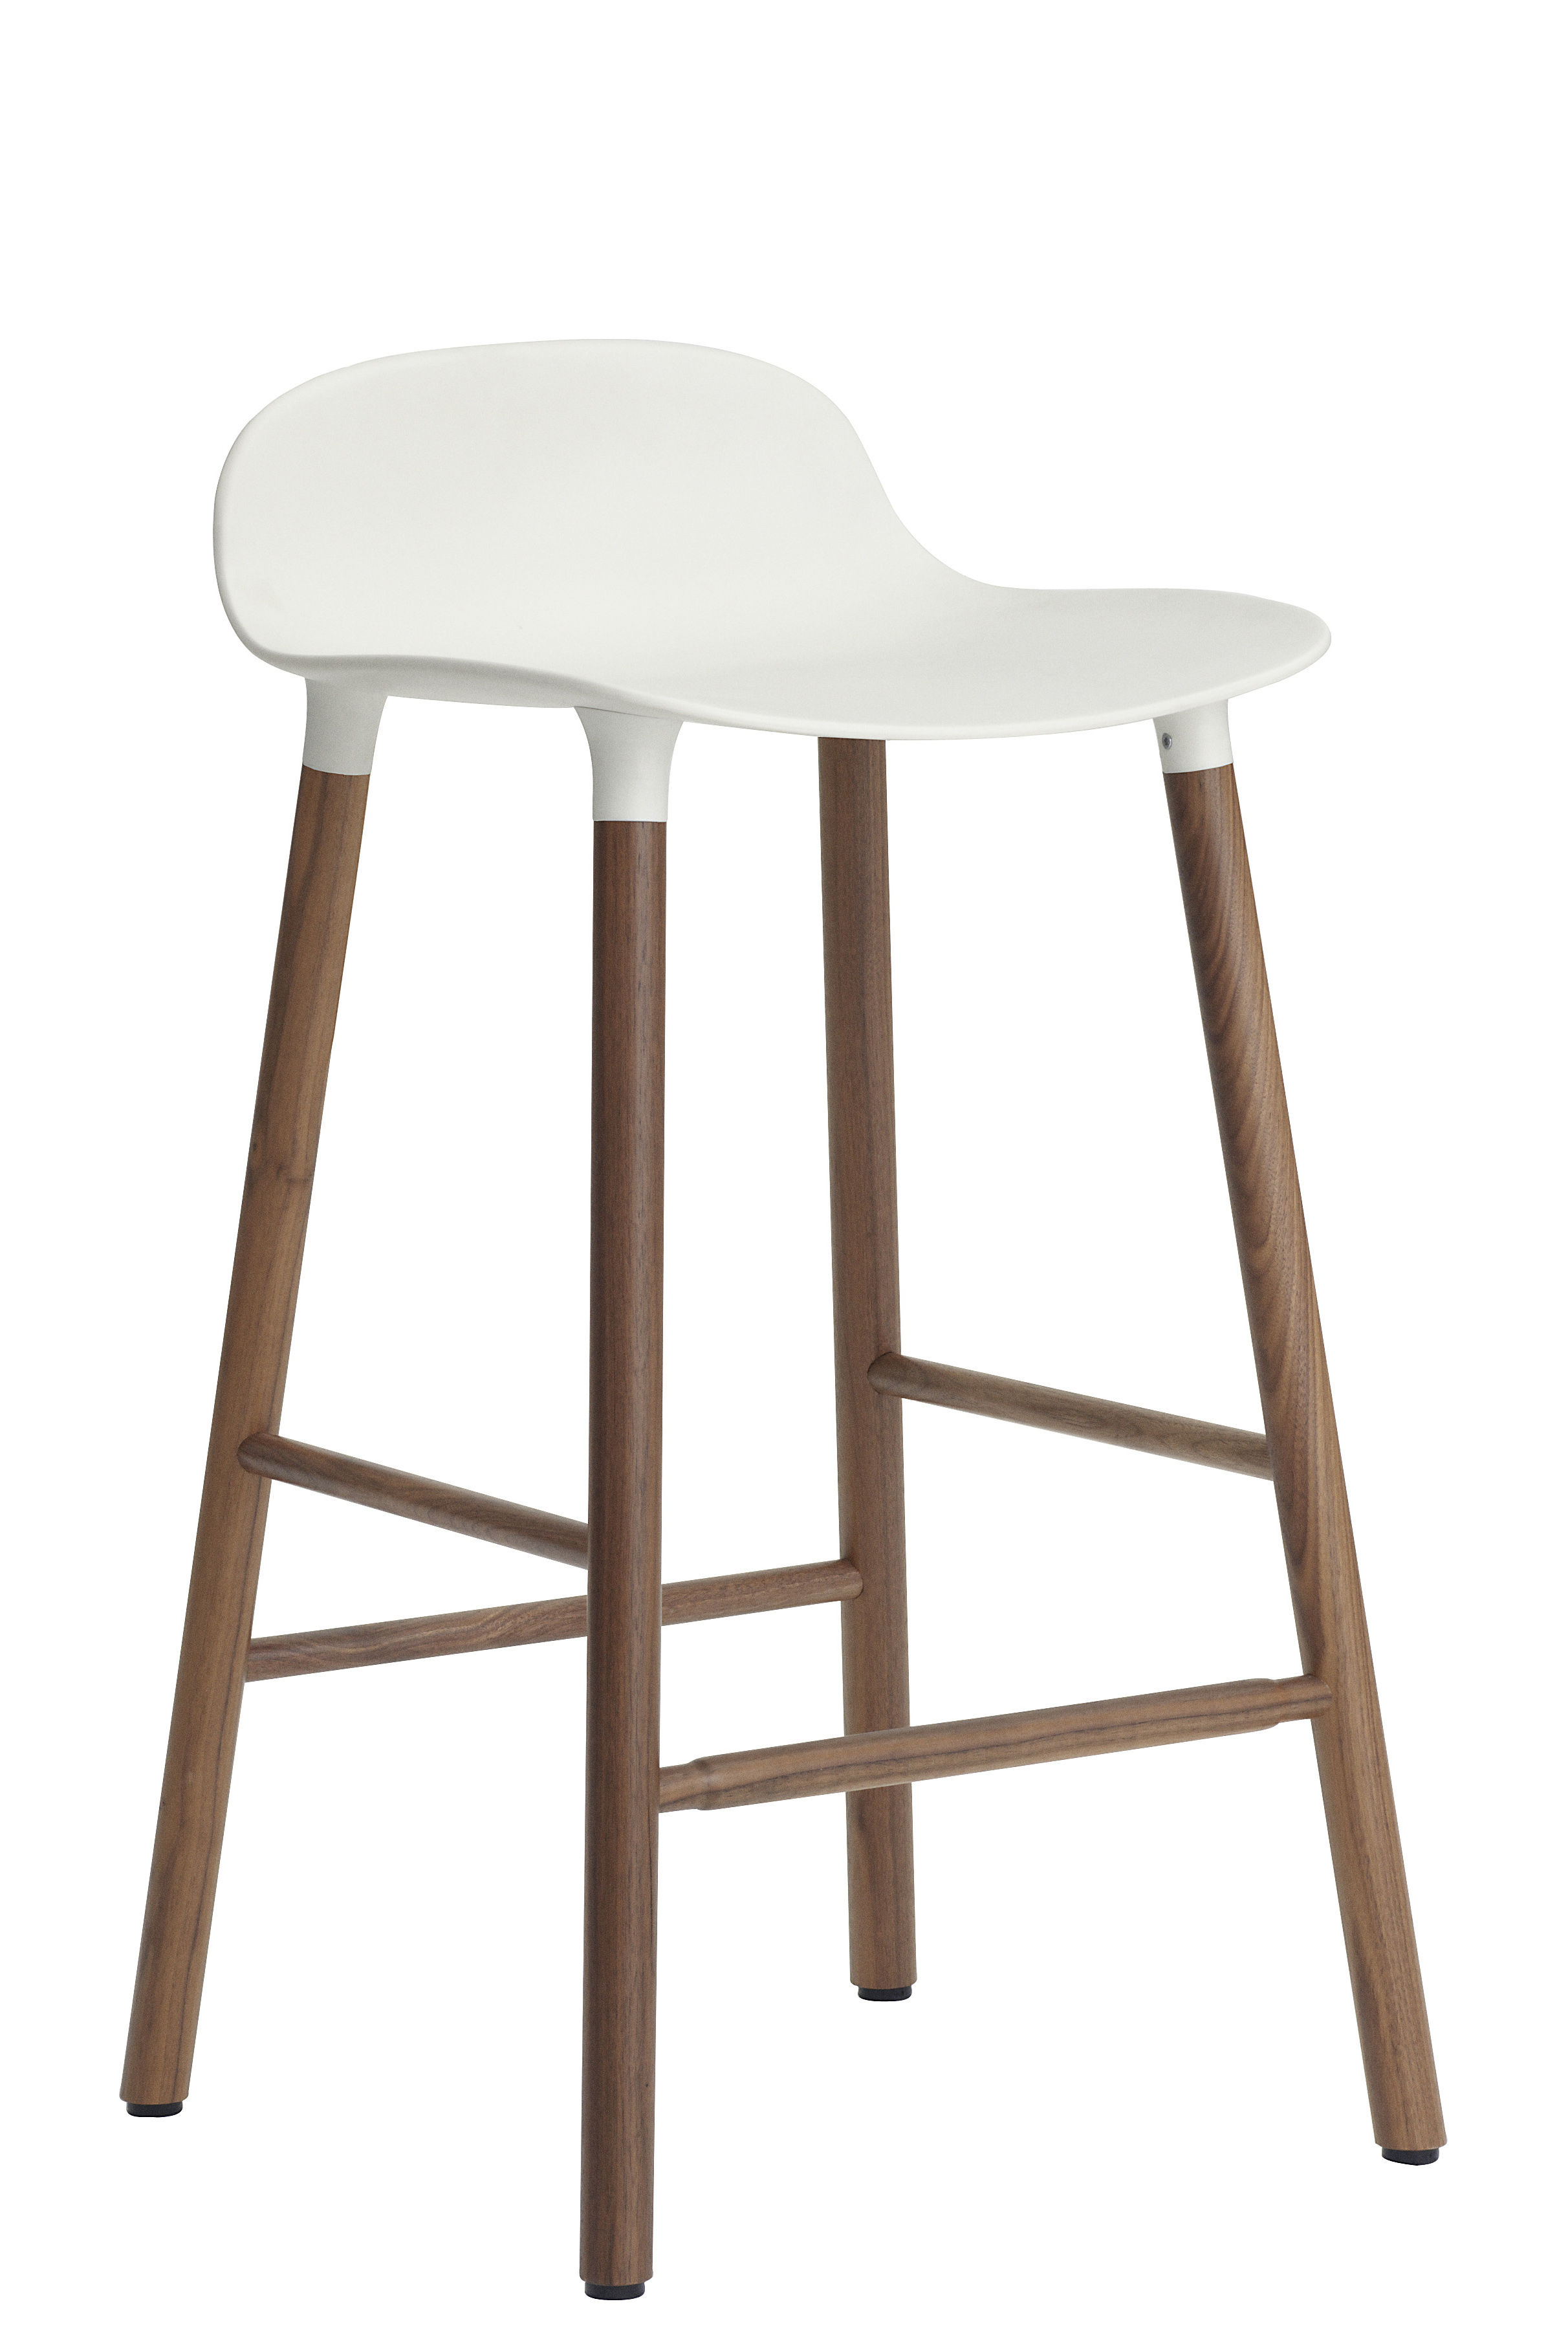 Tabouret de bar form h 65 cm pied noyer blanc noyer normann copenhagen - Made design mobilier ...